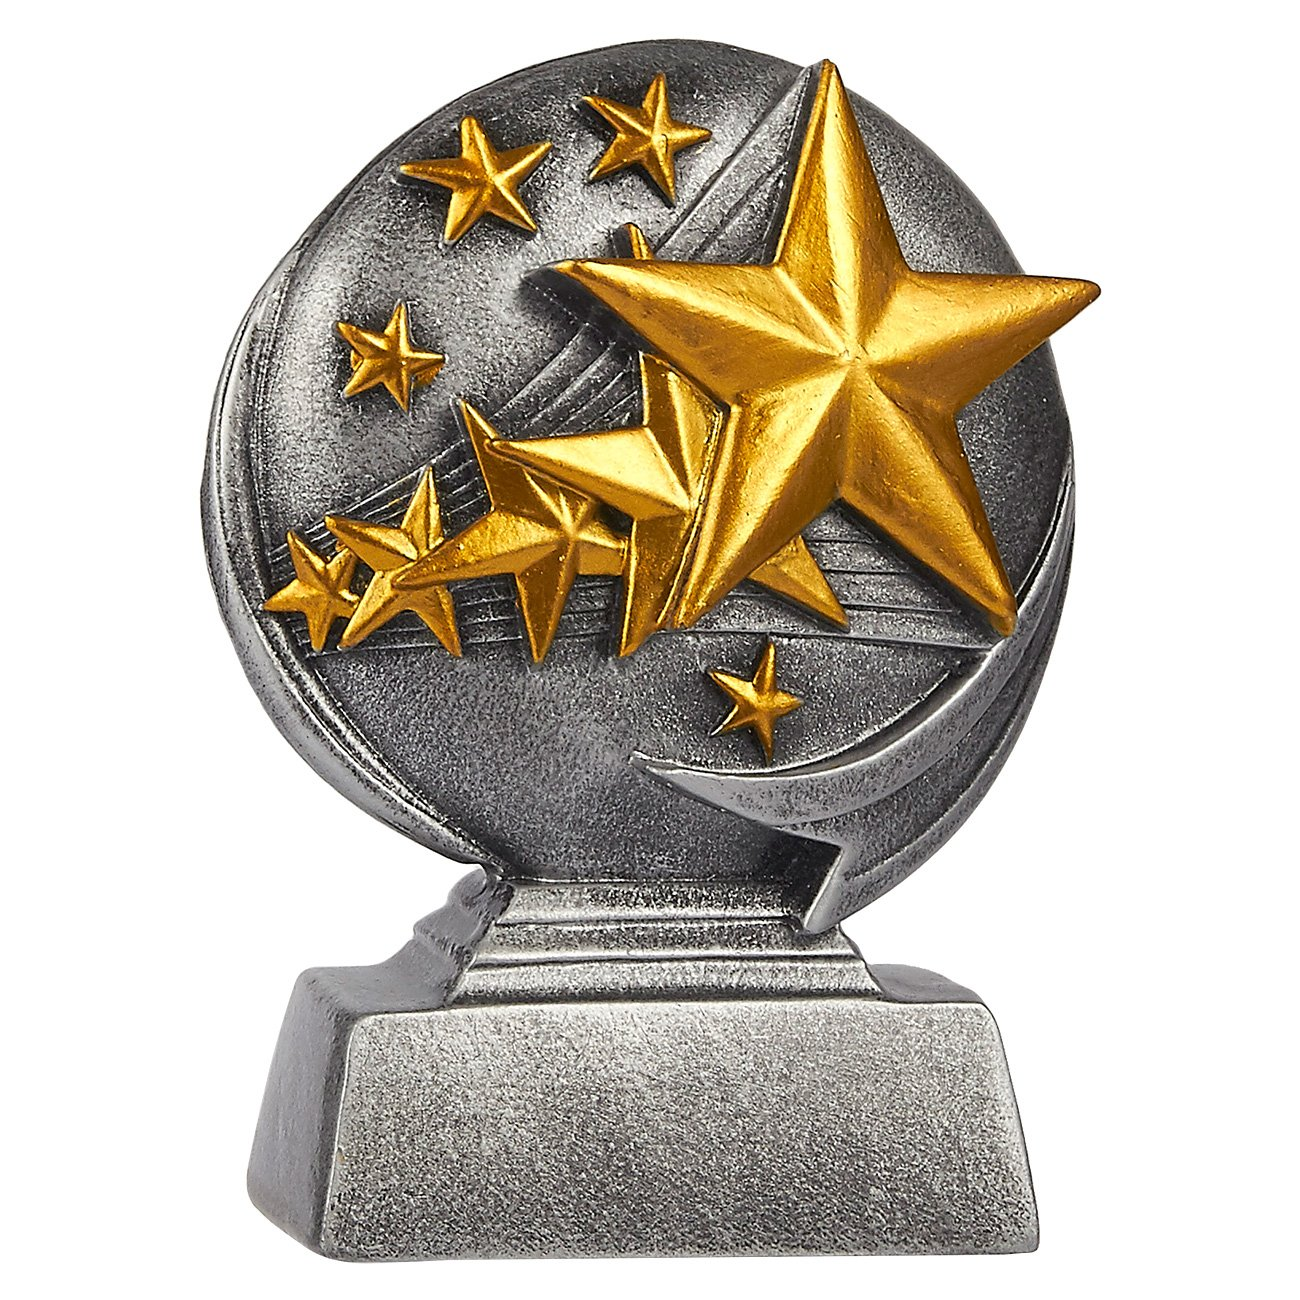 Juvale Star Trophy Parties Small Resin 5 Stars Award Trophy for Tournaments Competitions 4 x 5 x 1.5 Inches